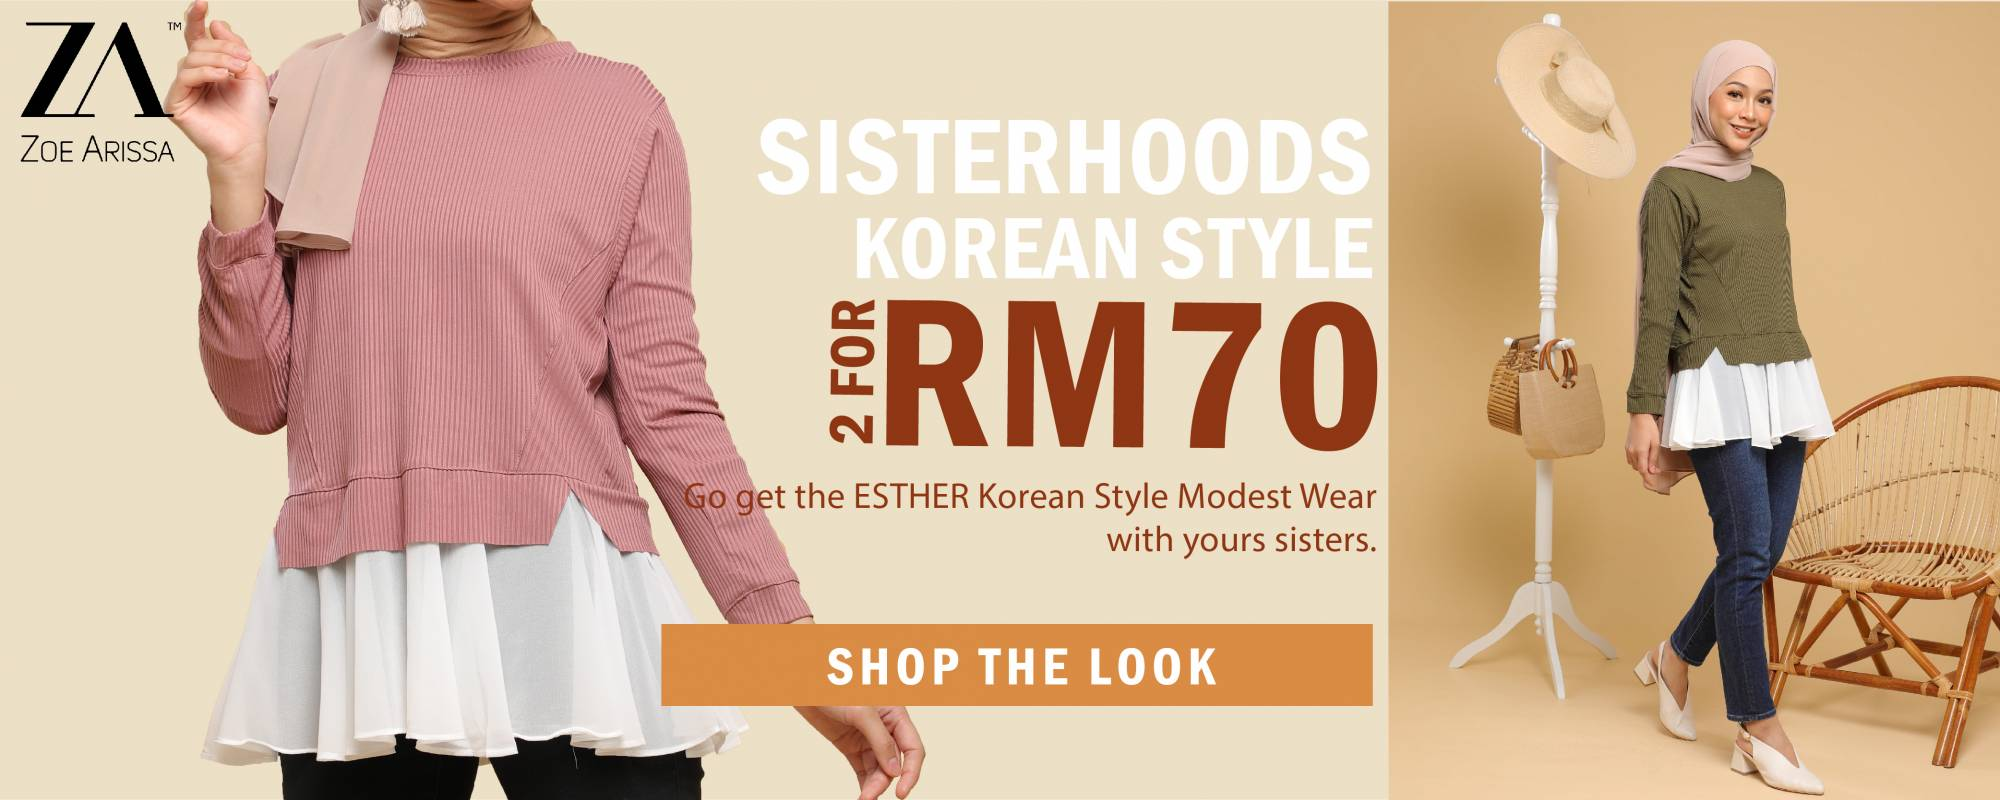 2 Top for RM70